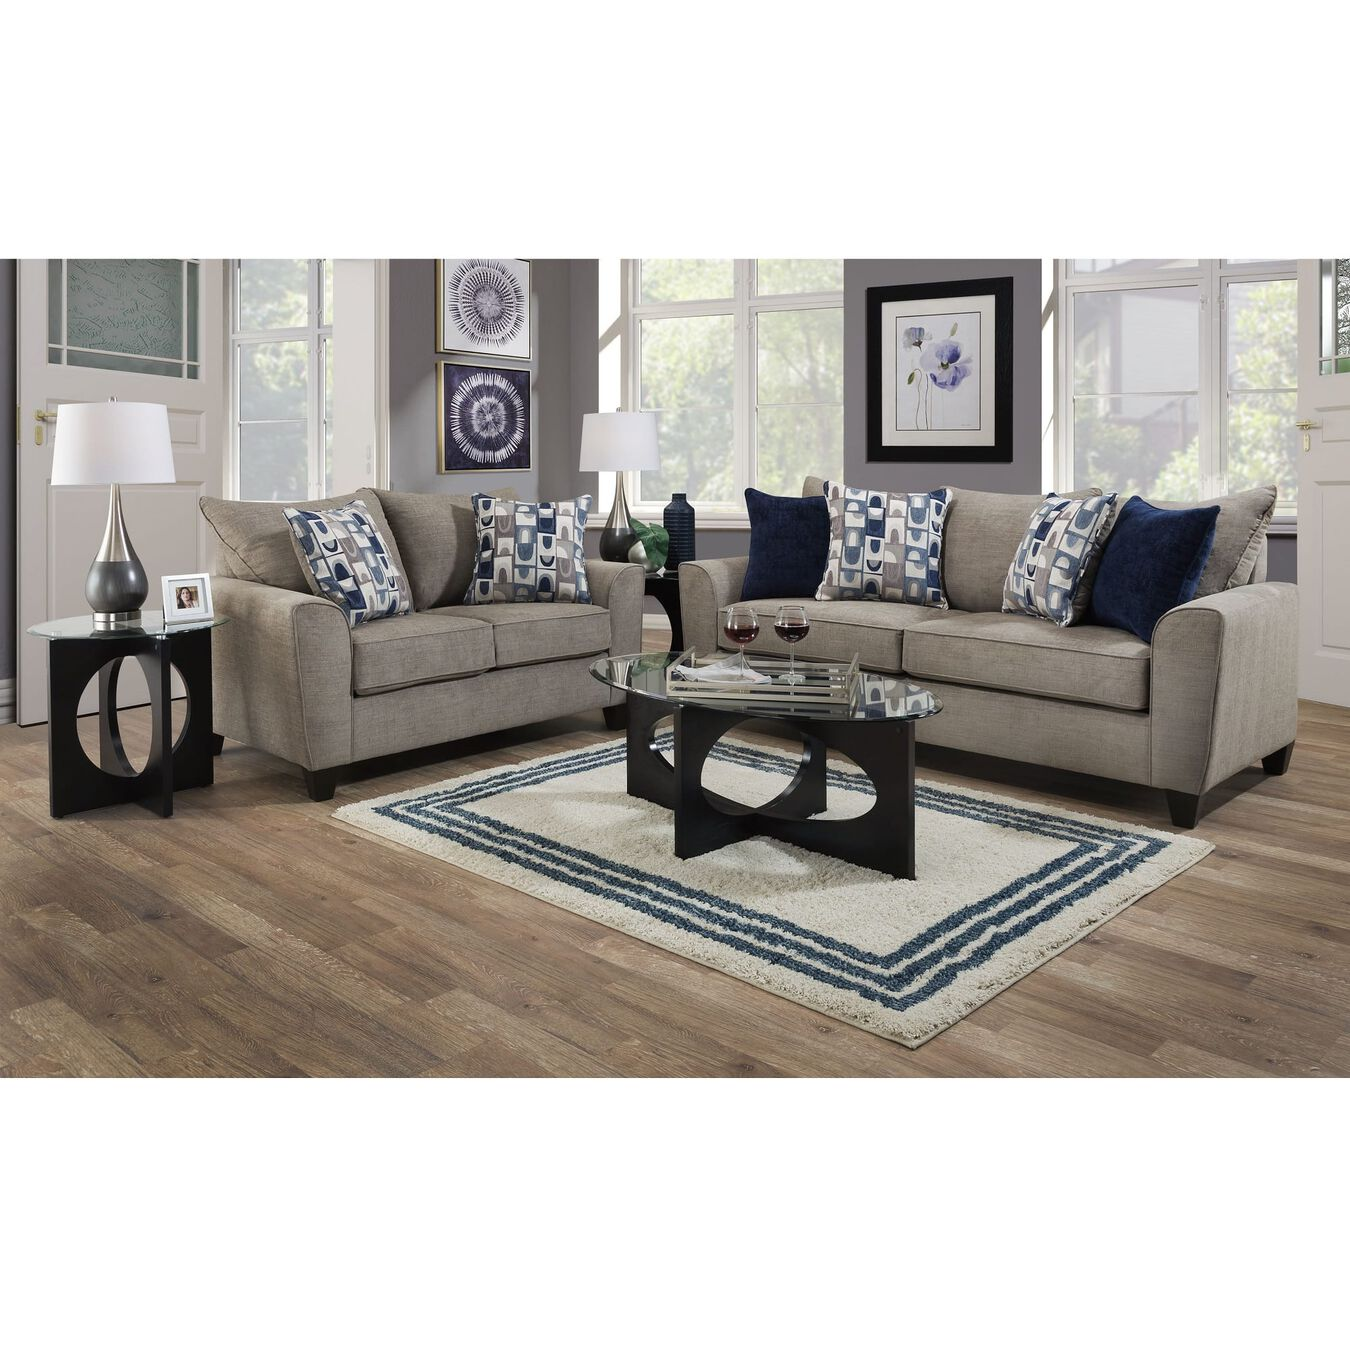 United sofa loveseat sets 2 piece eden living room collection